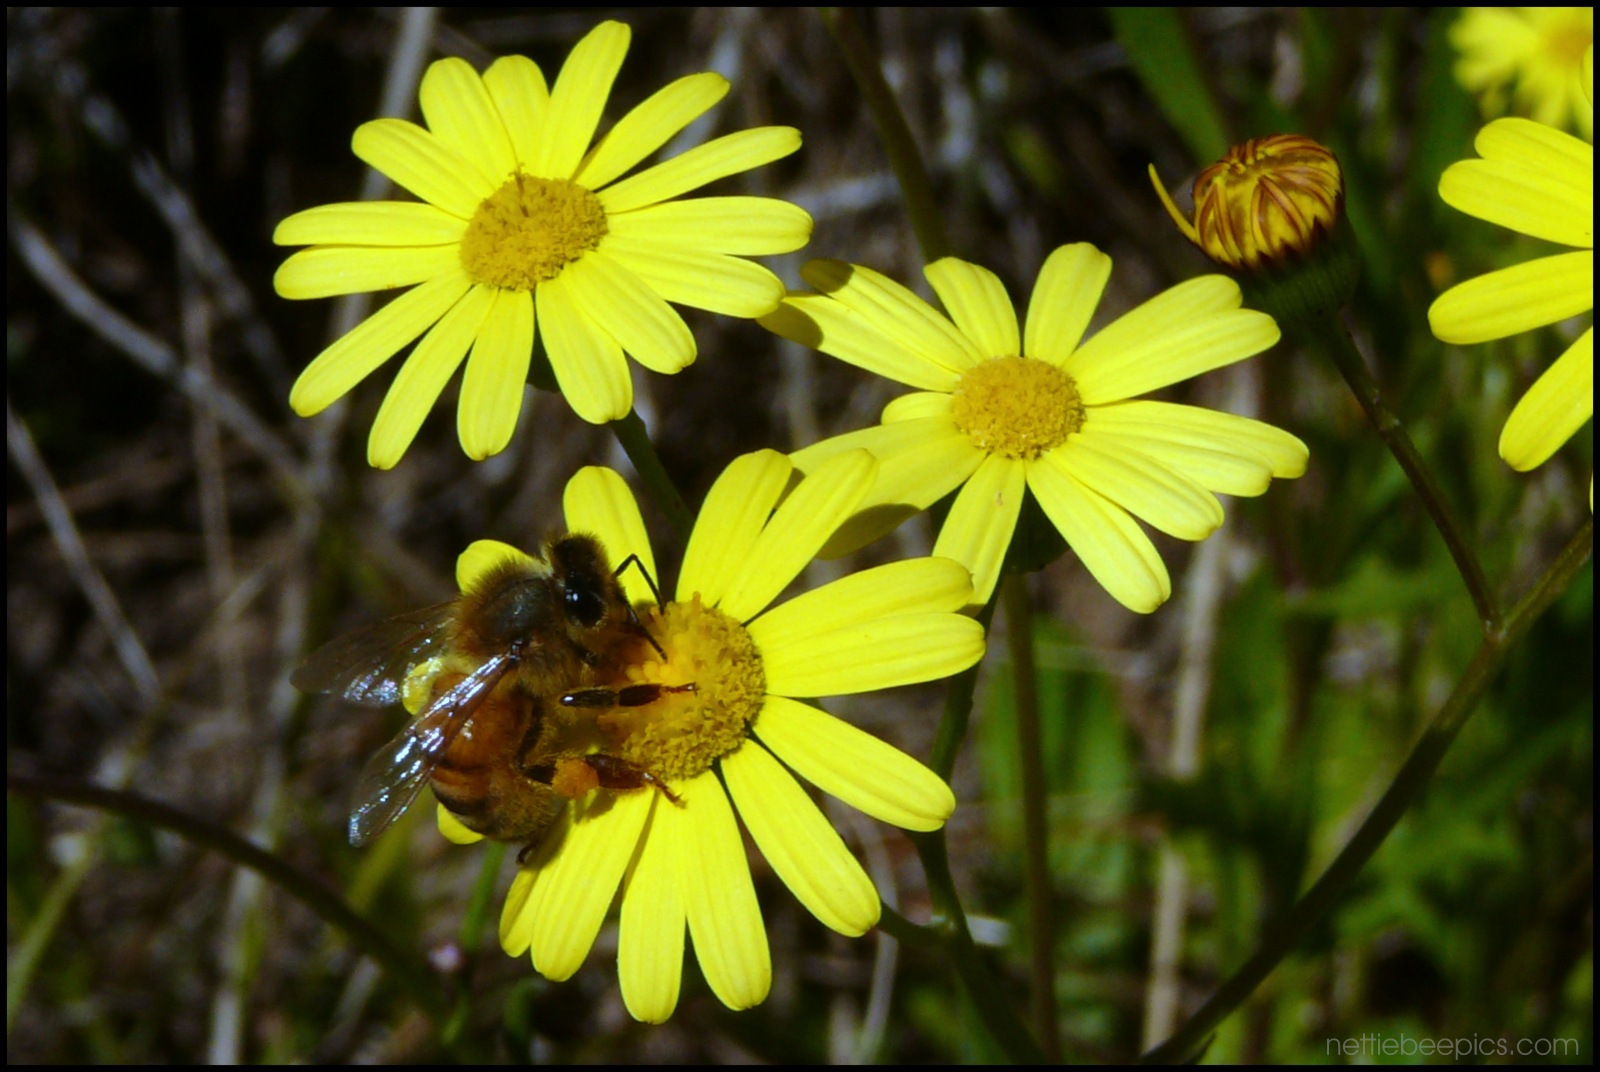 Bee on Yellow Daisies by Nettie Bee